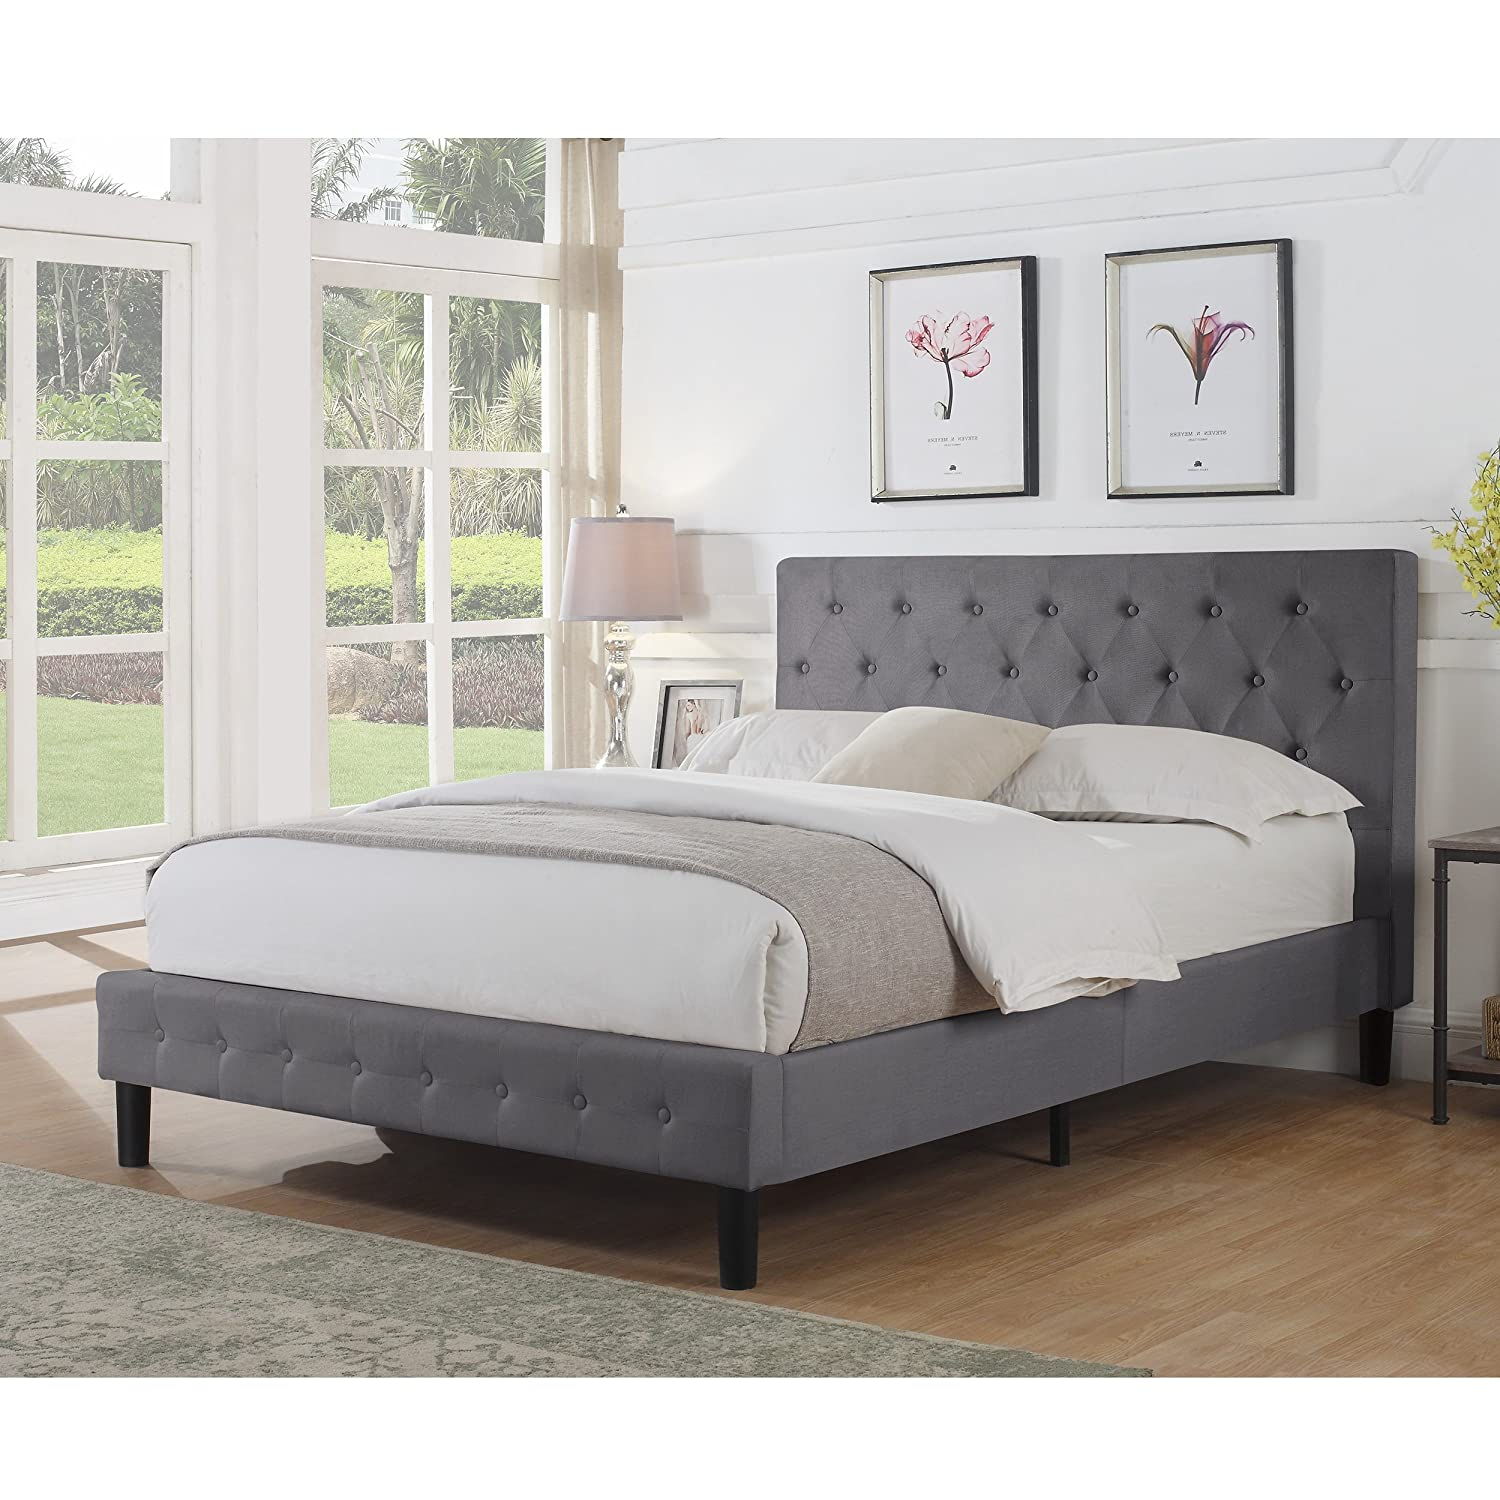 Rosevera Diamond Upholstered Platform Bed, Queen, Grey